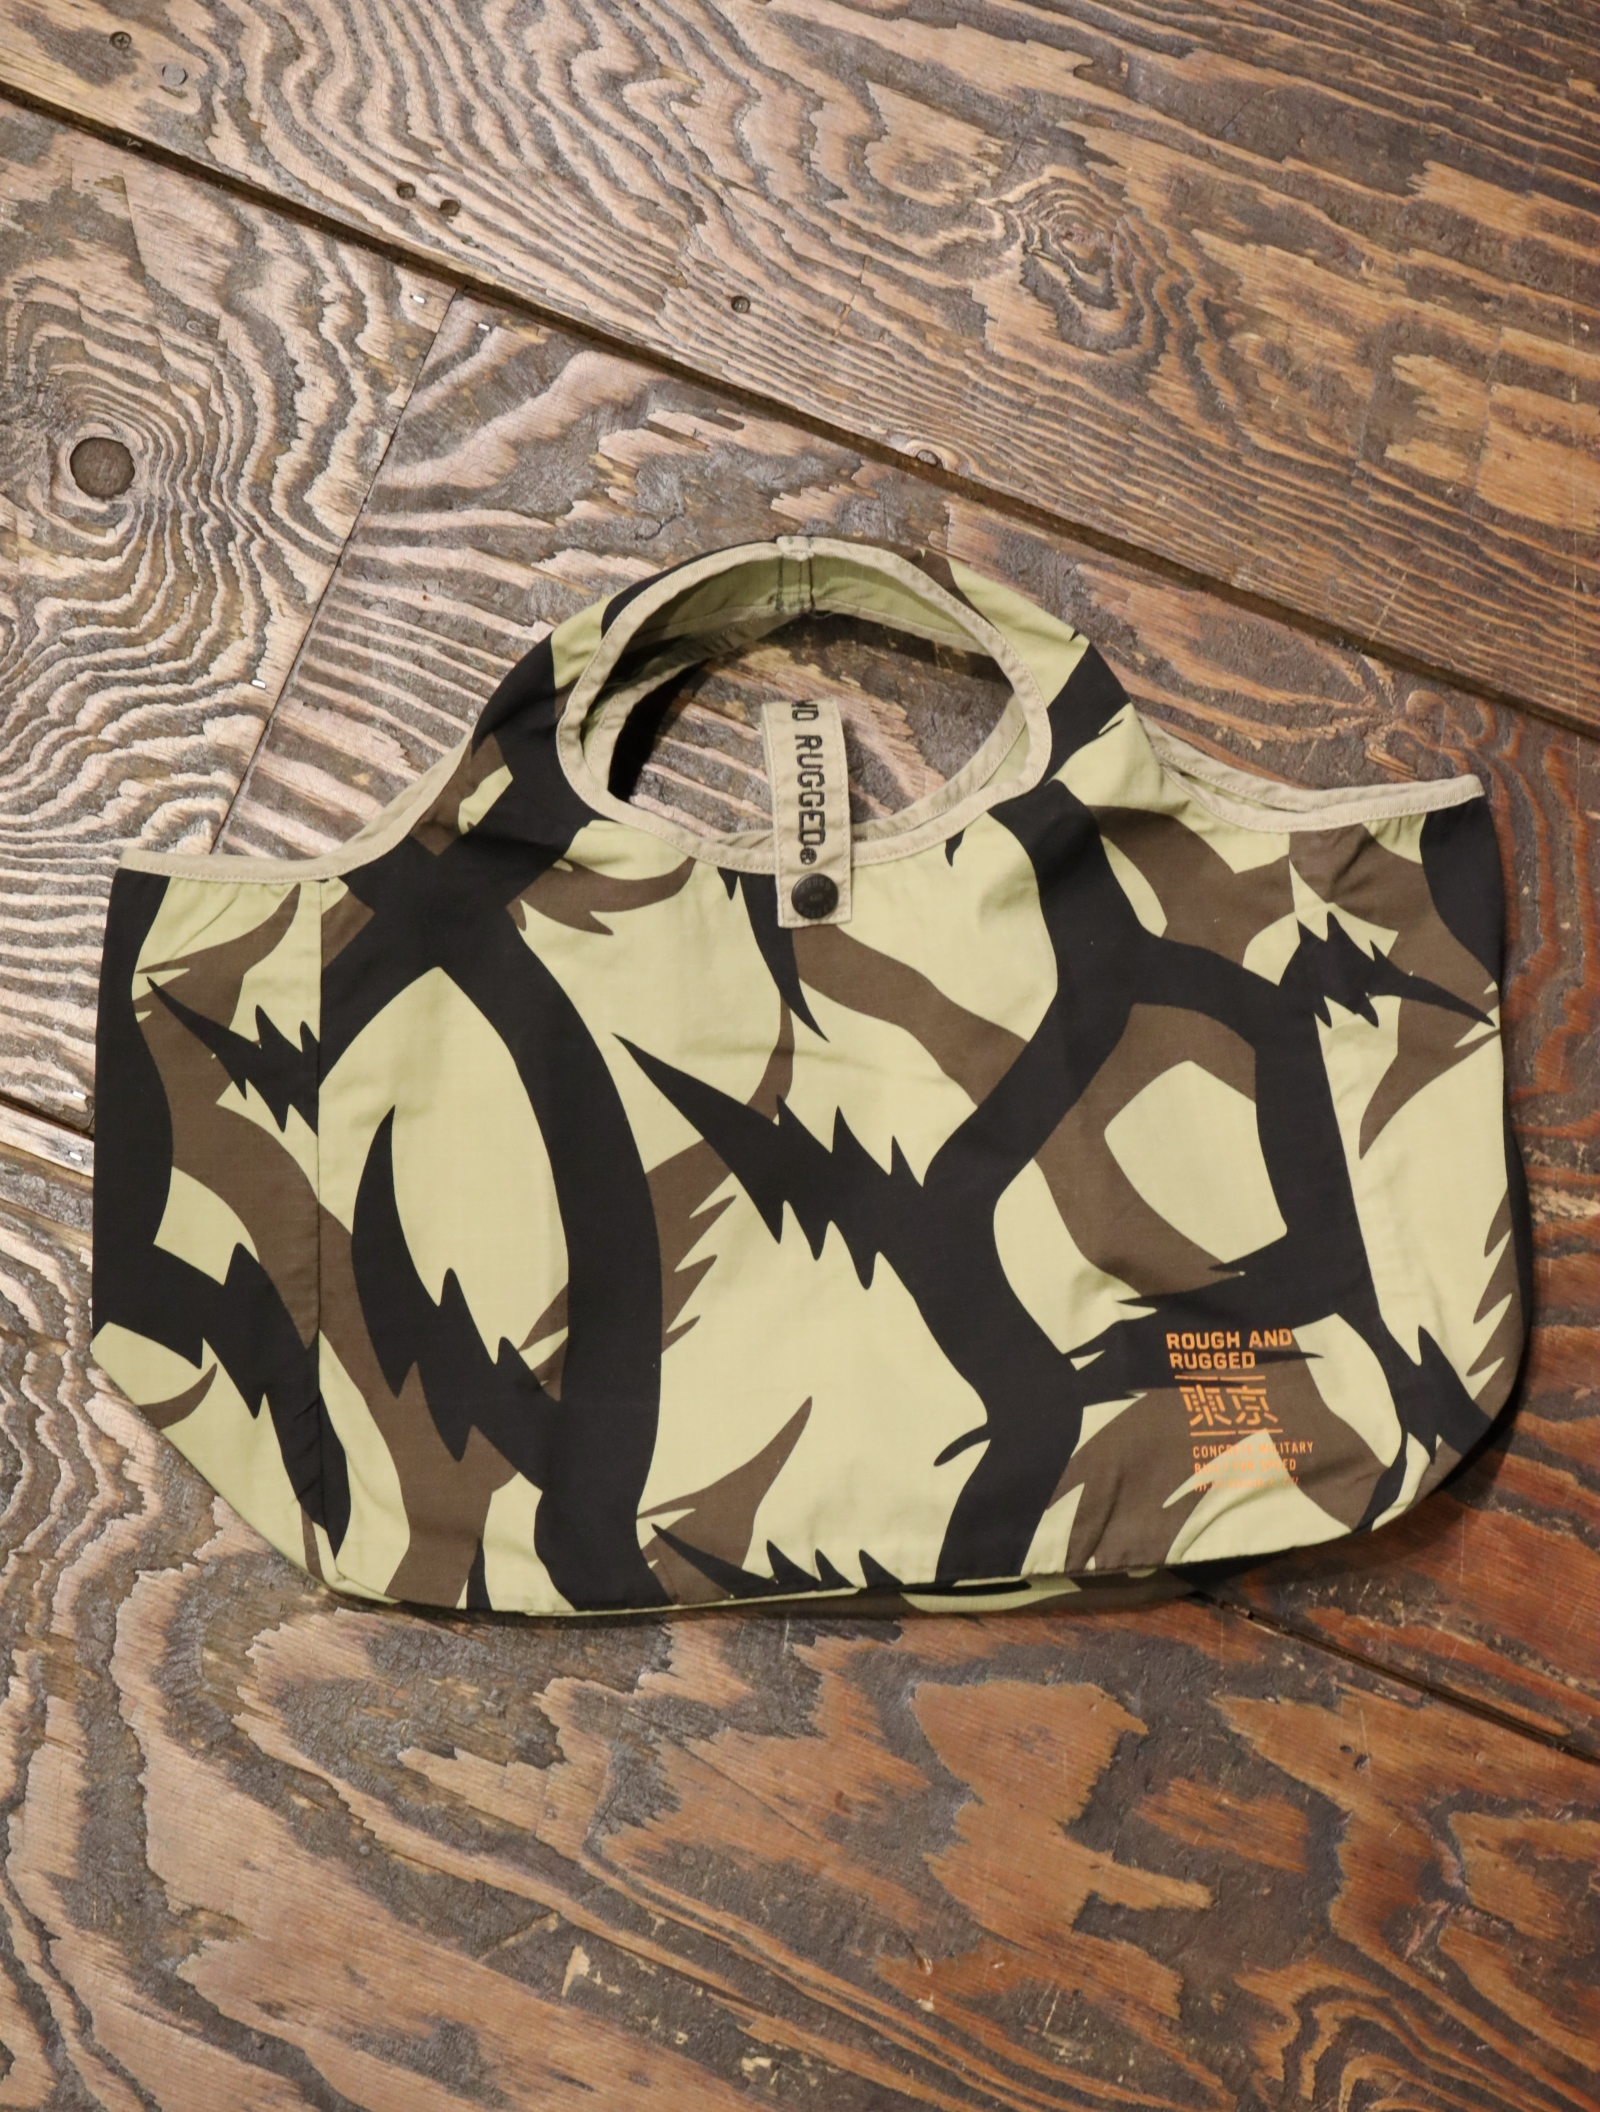 ROUGH AND RUGGED   「DESERT TOTE」  トートバッグ